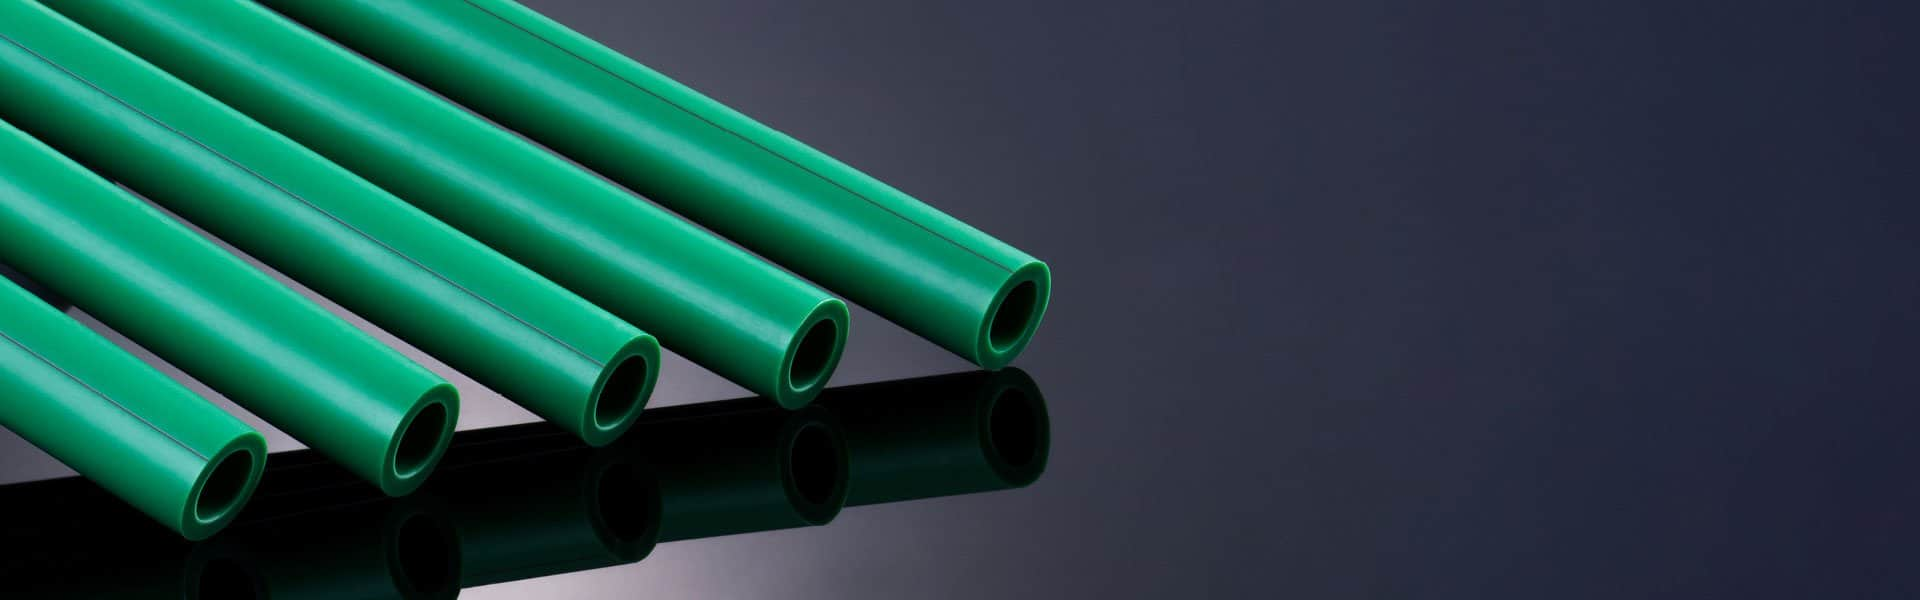 ppr green pipe